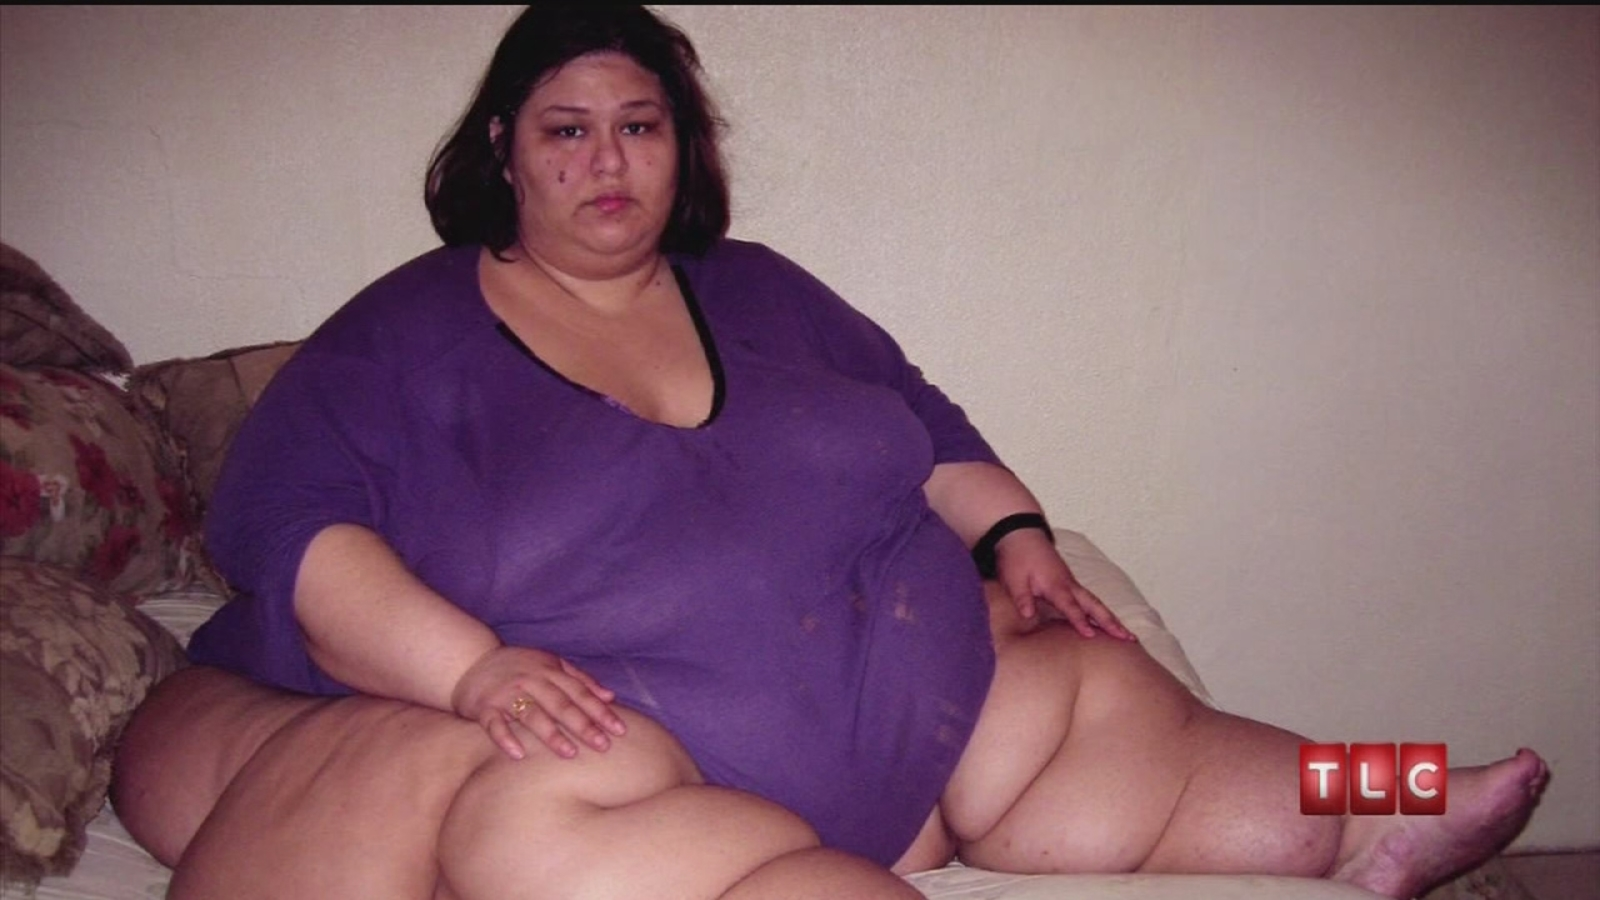 Woman Known As Half Ton Killer Shares Weight Loss Journey Abc30 Fresno